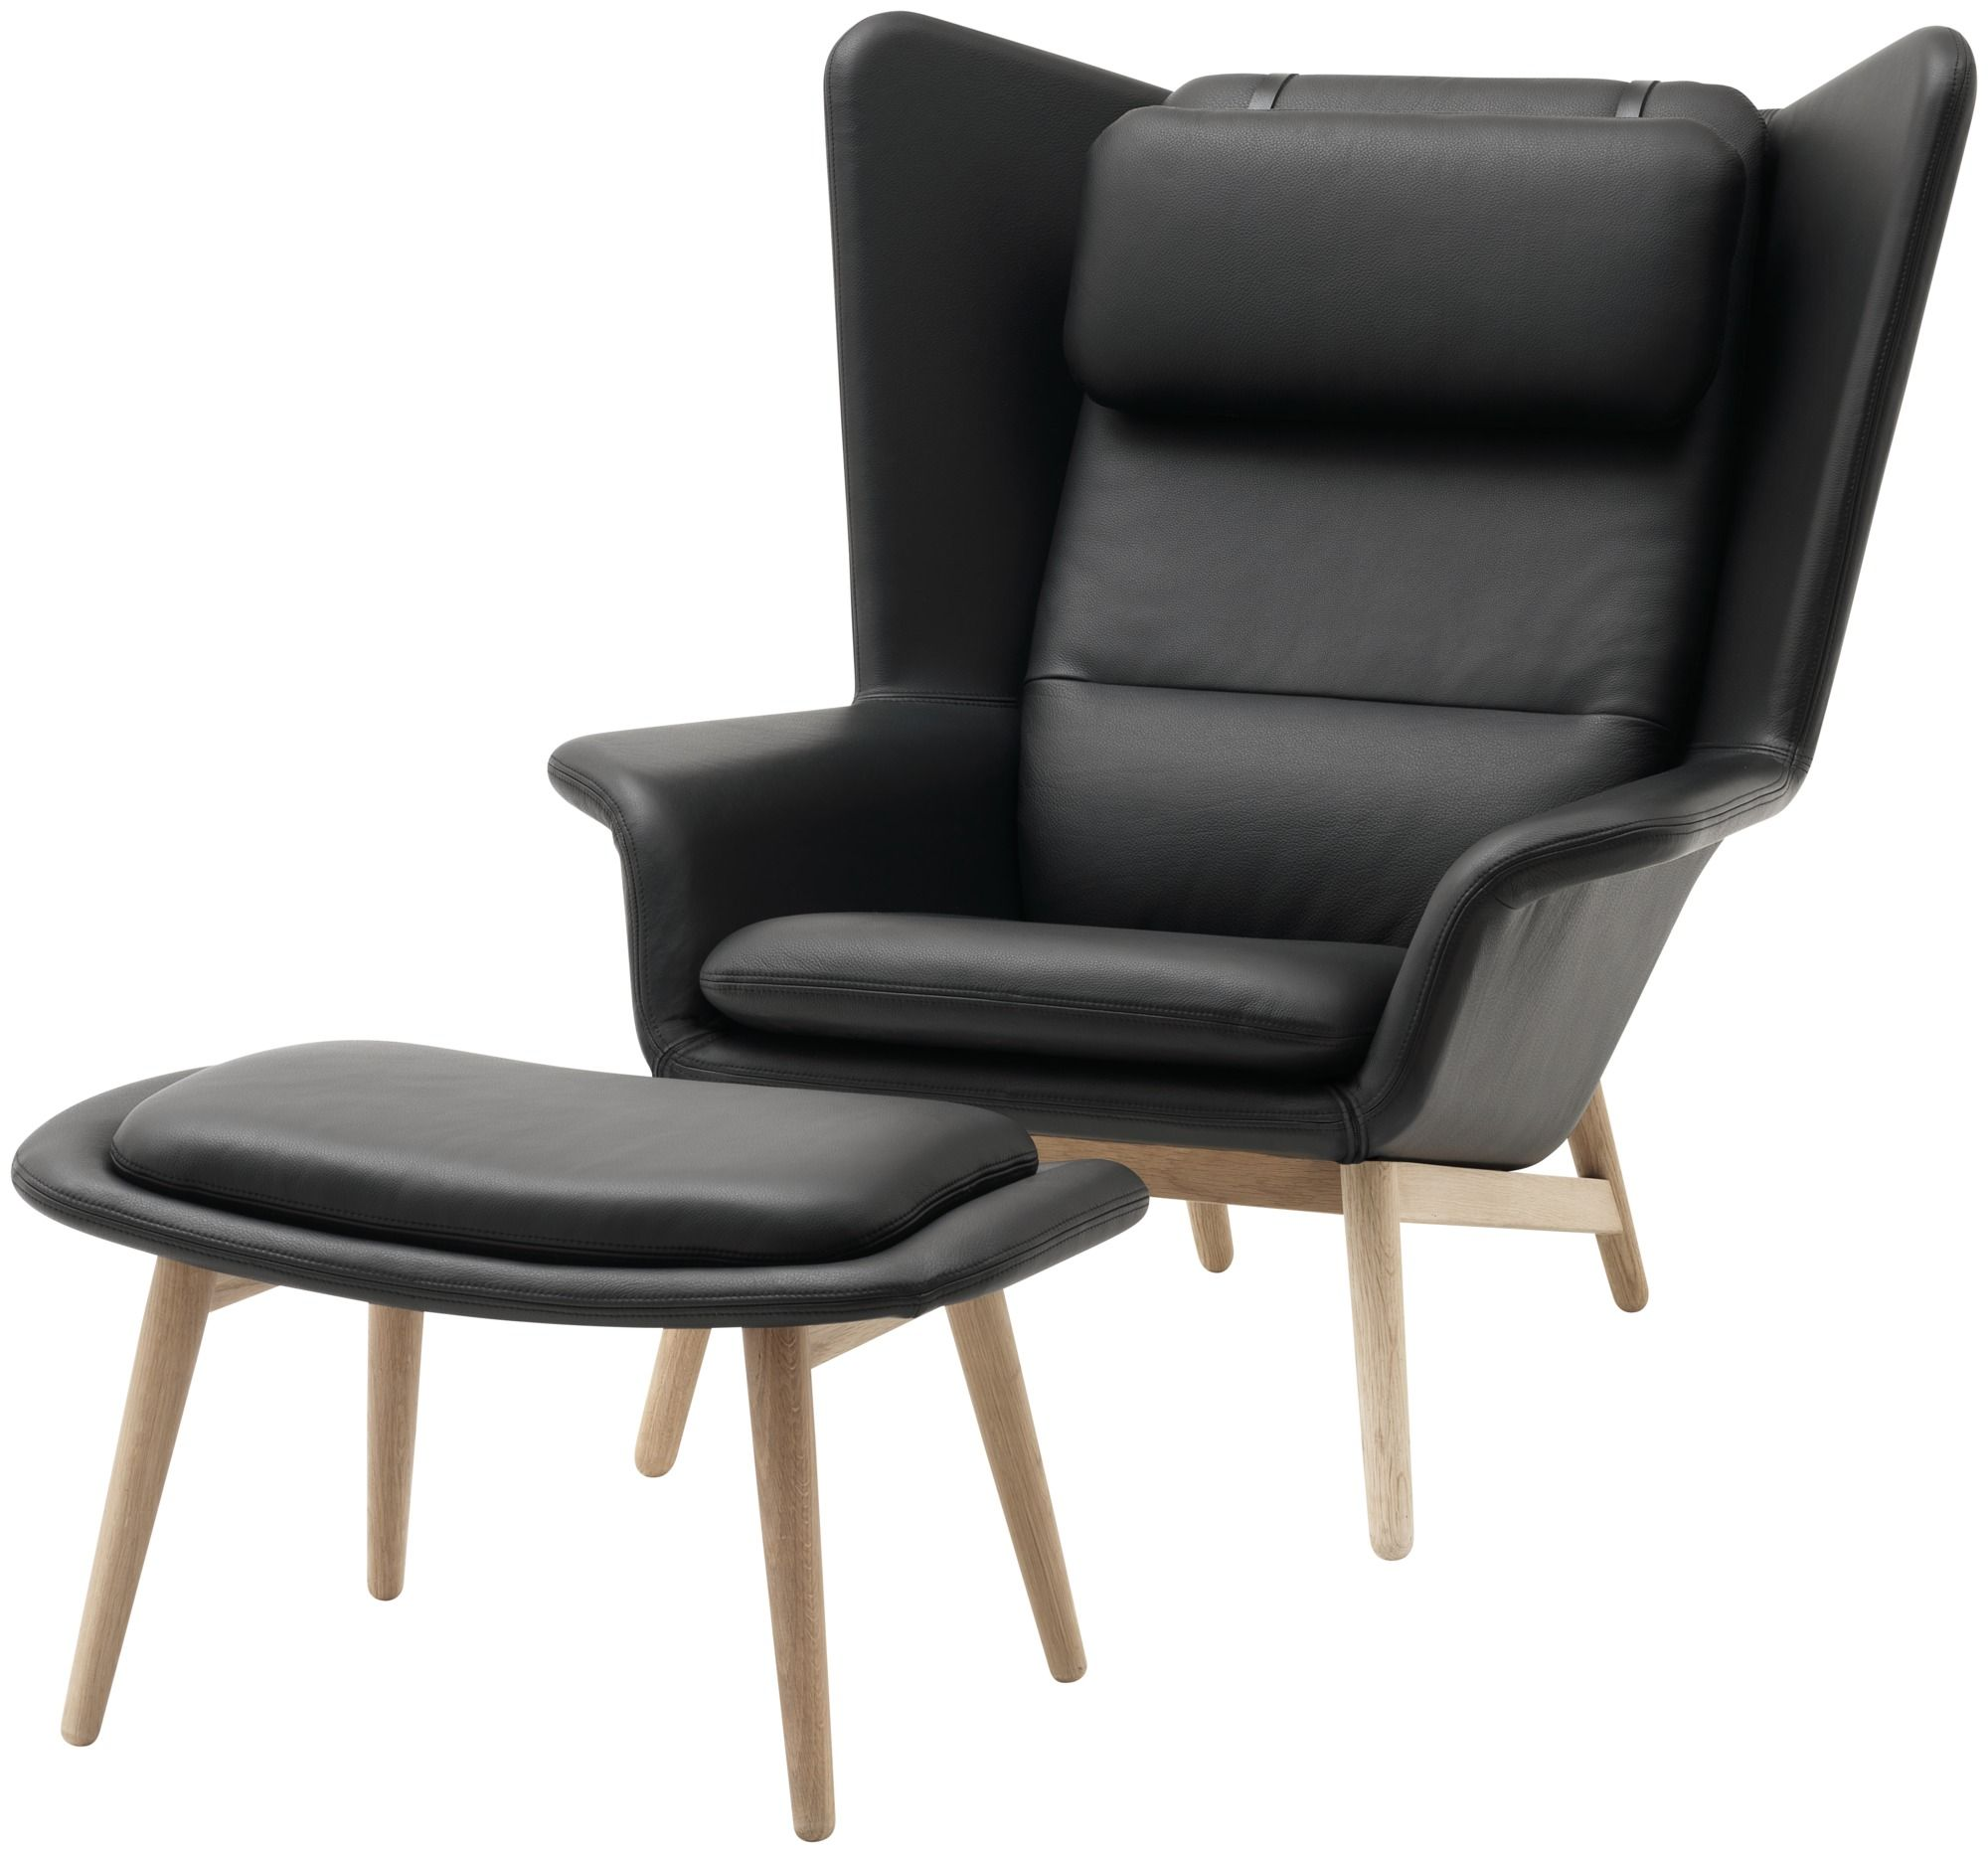 Discover modern armchairs from BoConcept Furniture Store Sydney Australia   Design to suit your style and home. Modern Designer Armchairs  Leather Lounge Chairs   BoConcept